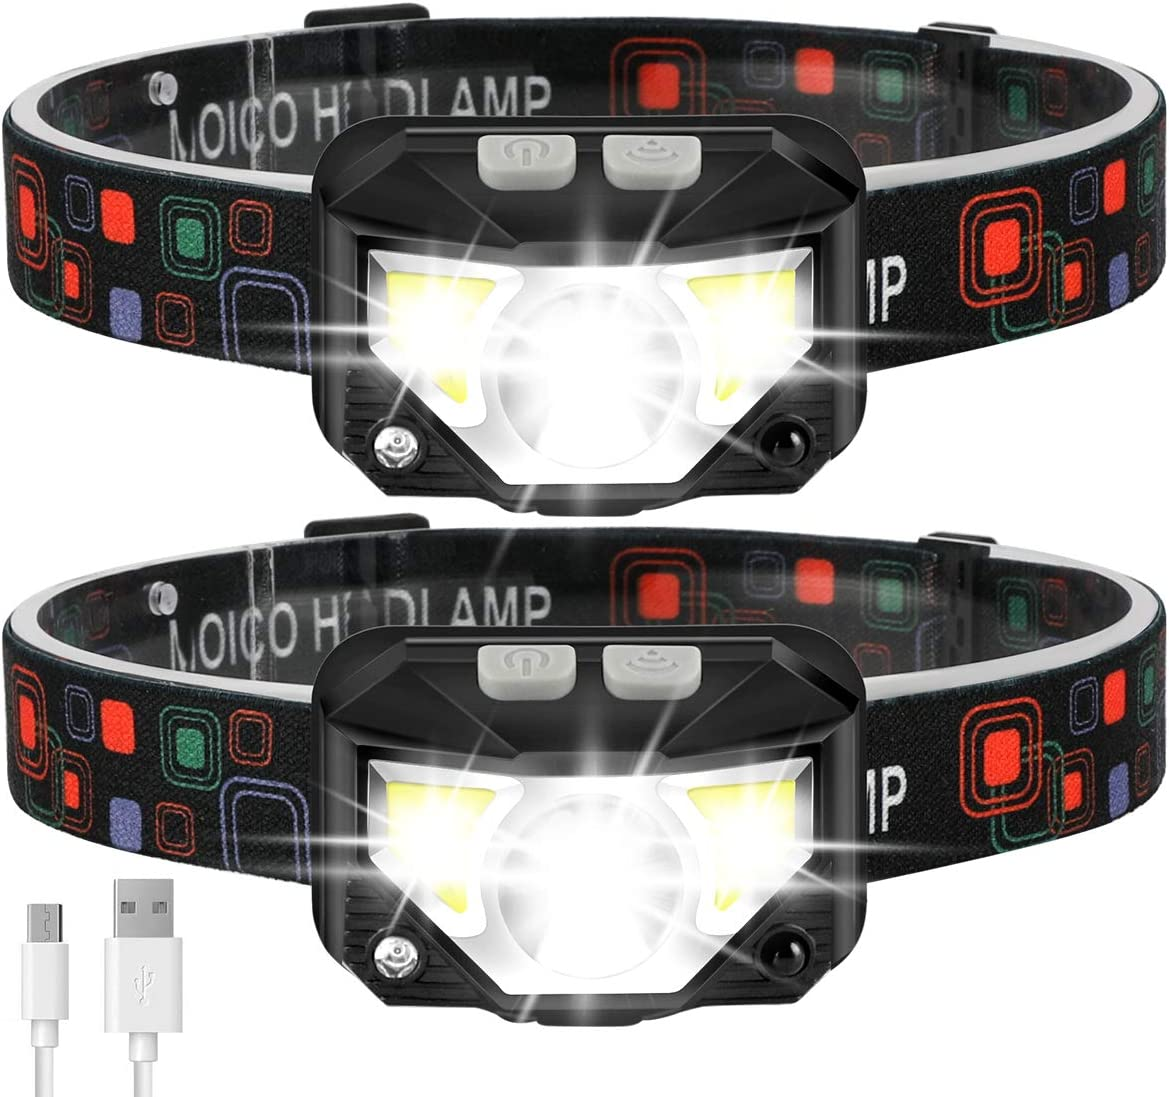 Headlamp Flashlight, MOICO 1000 Lumen Ultra-Light Bright LED Rechargeable Headlight with White Red Light, 2 Pack Waterproof Motion Sensor Head Lamp, 8 Modes for Outdoor Camping Cycling Running Fishing - -